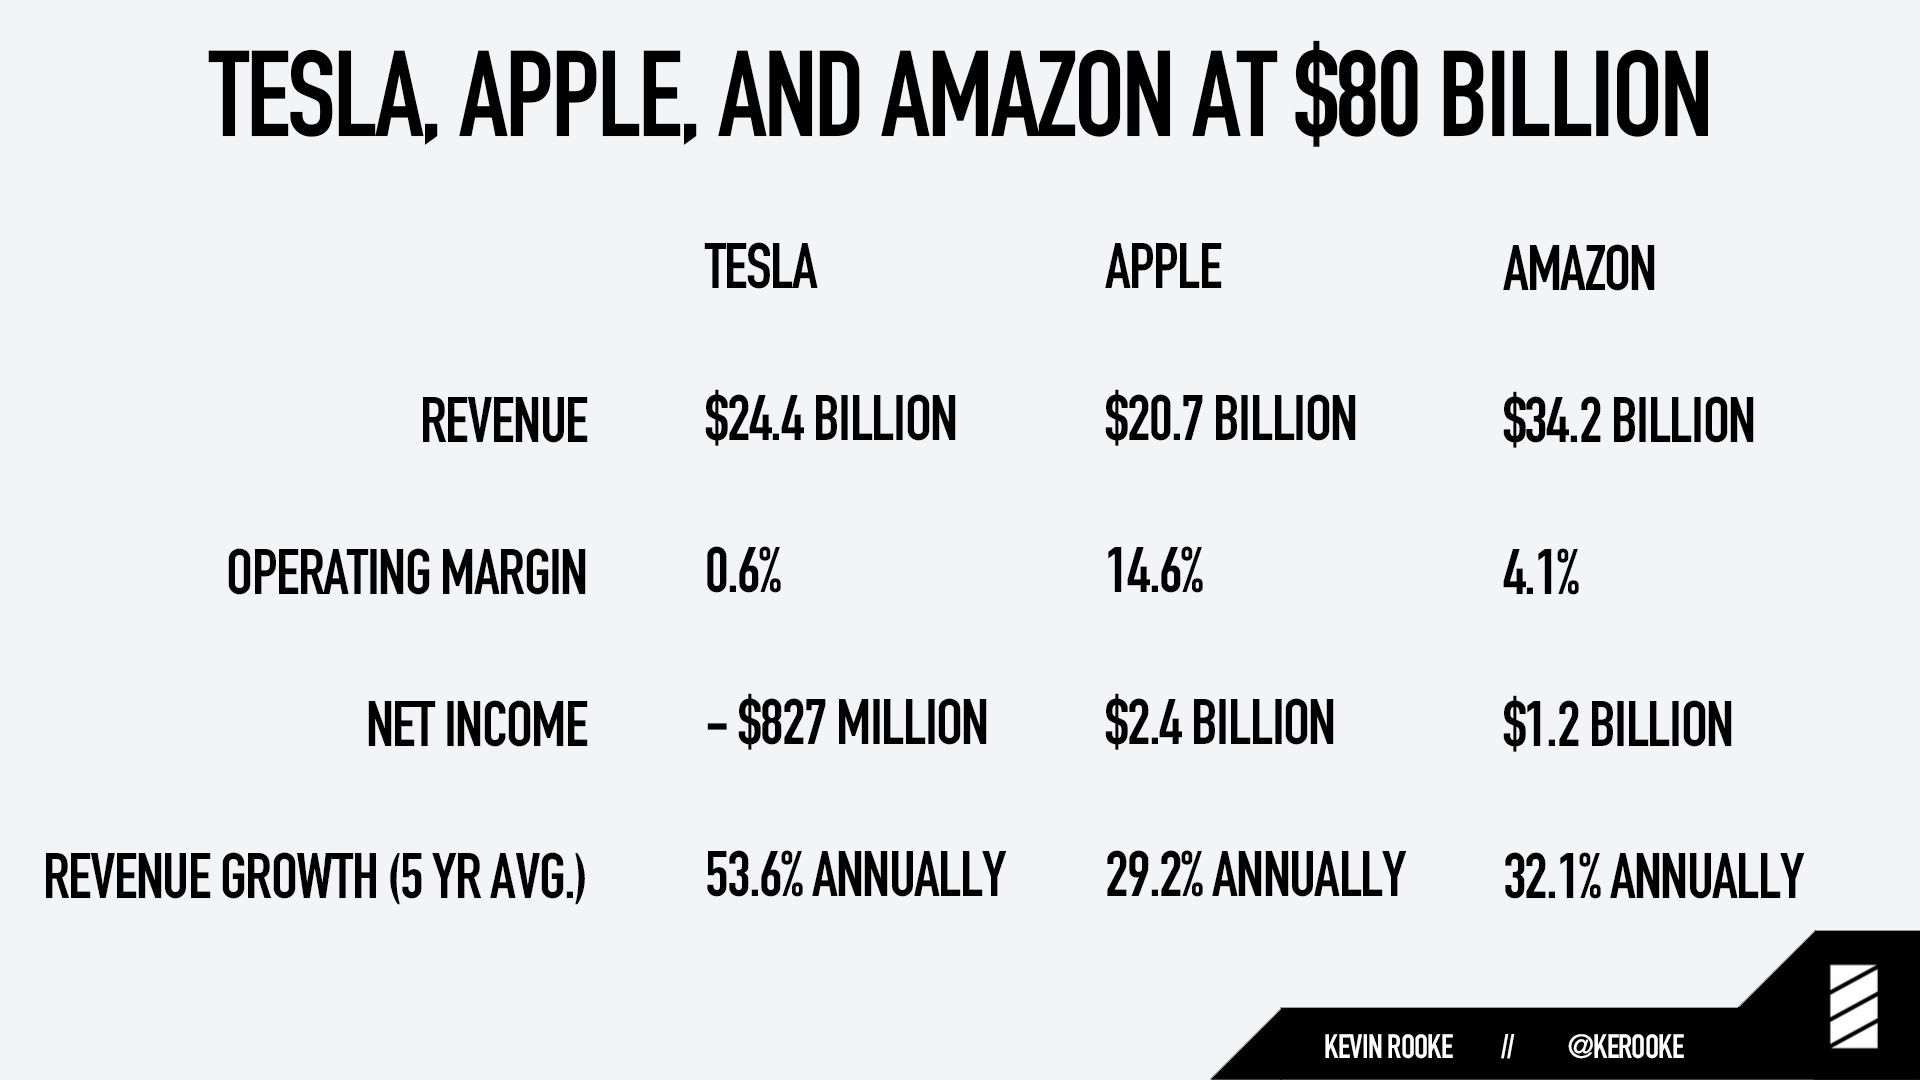 Tesla at $80 billion market cap vs Apple and Amazon at $80 billion